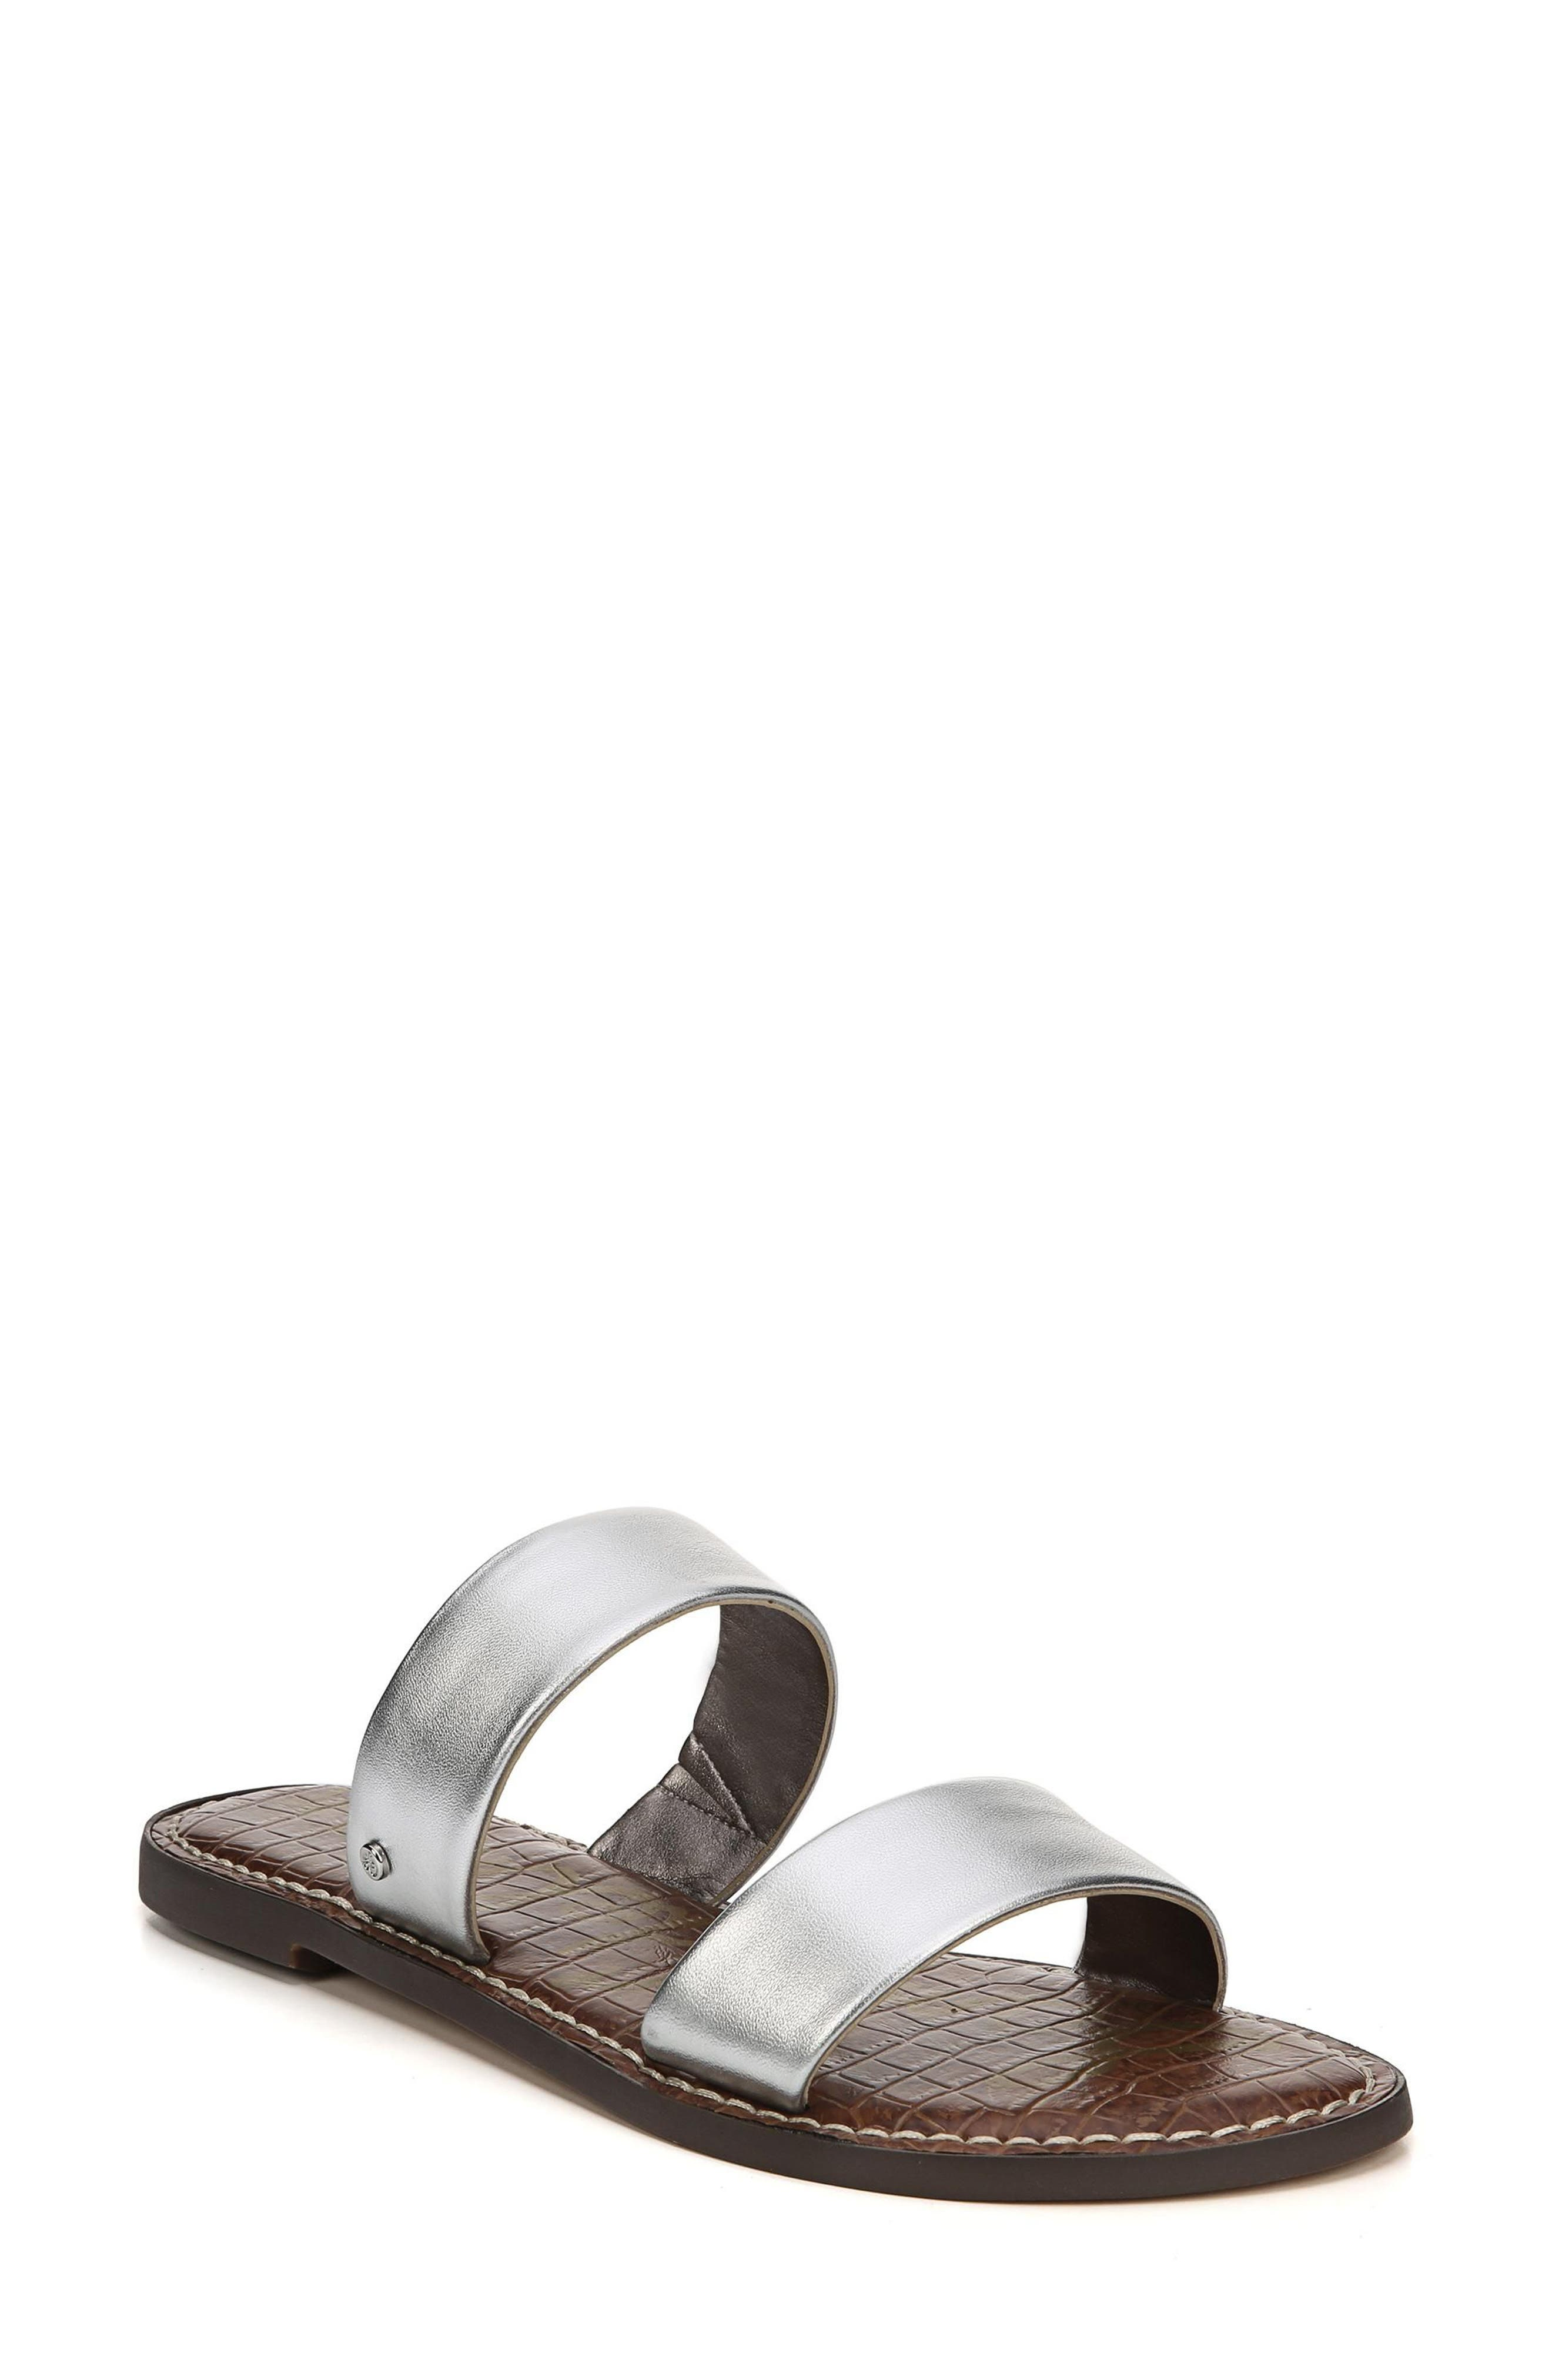 Gala Two Strap Slide Sandal,                         Main,                         color, Silver Leather